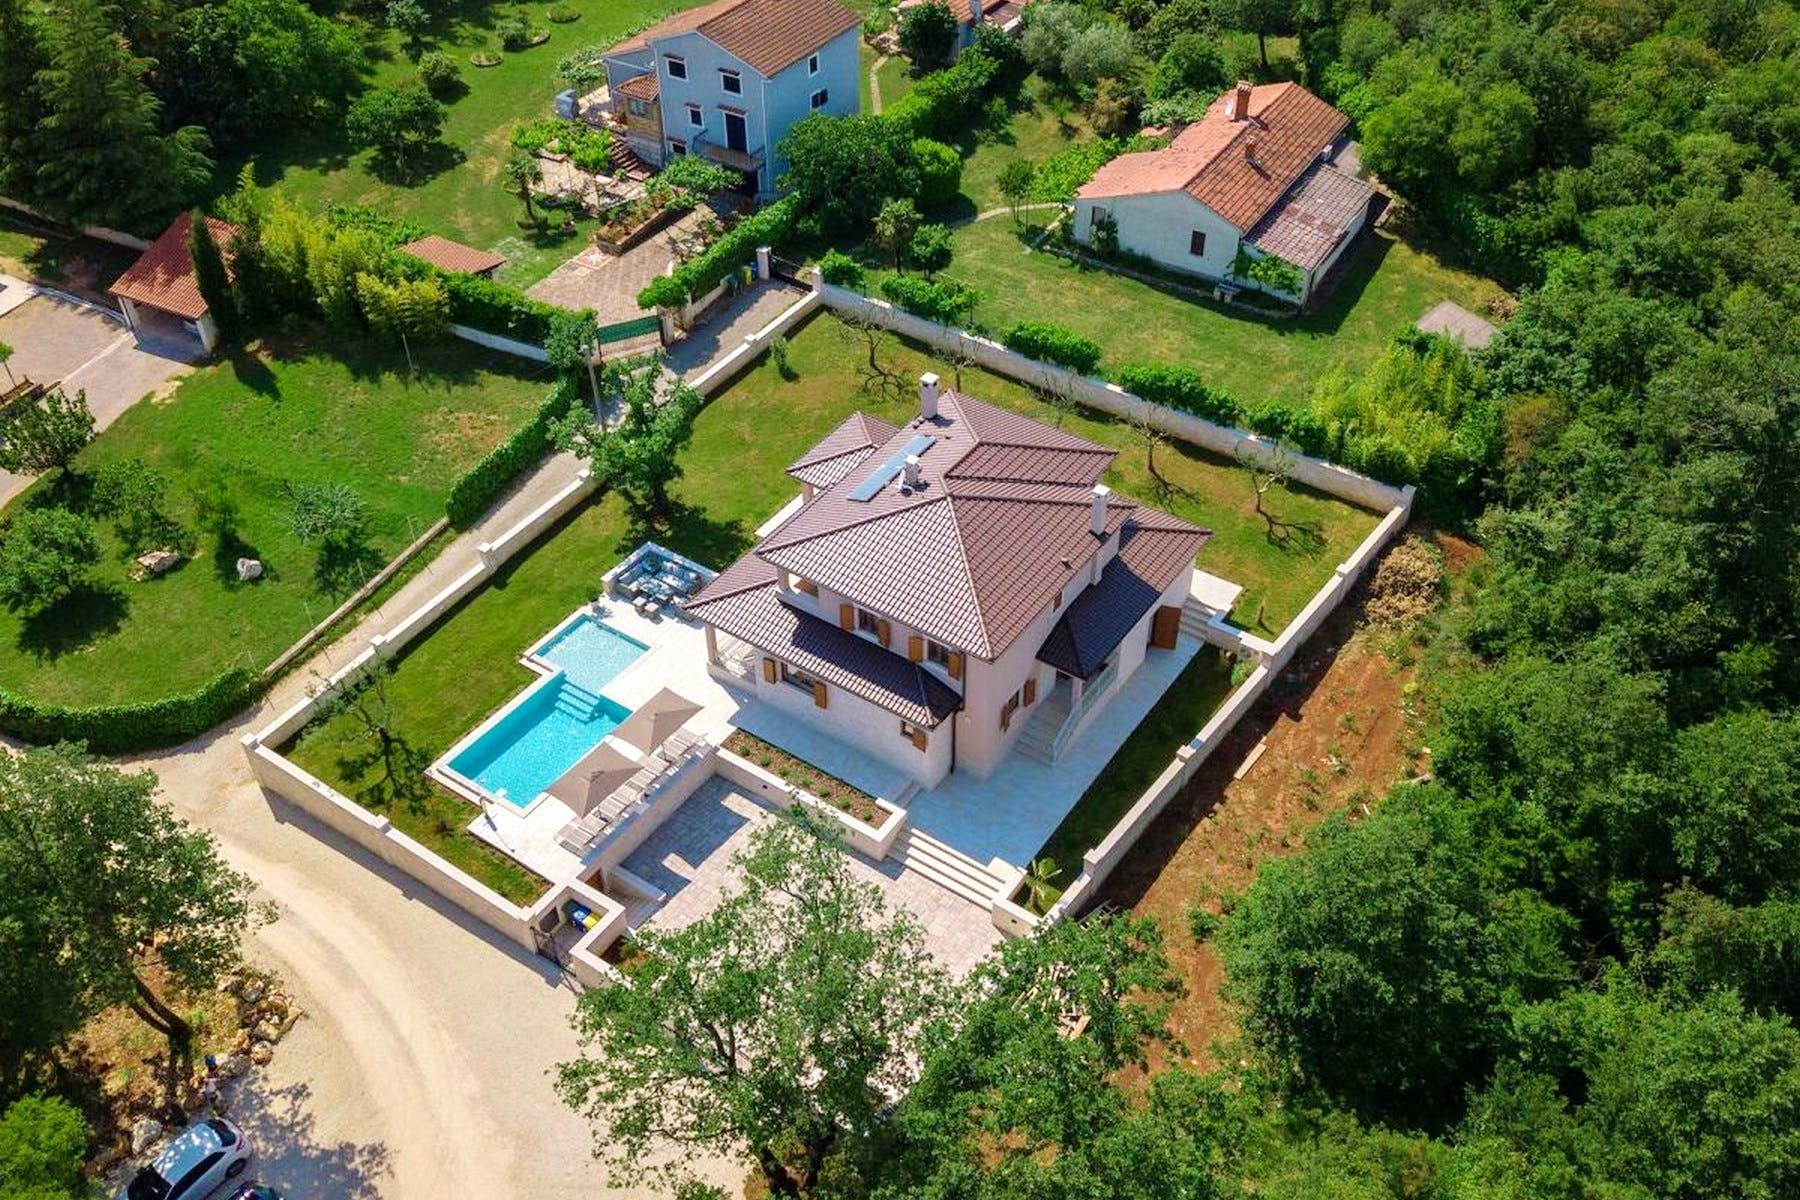 Traditional Istrian villa with swimming pool and spacious garden